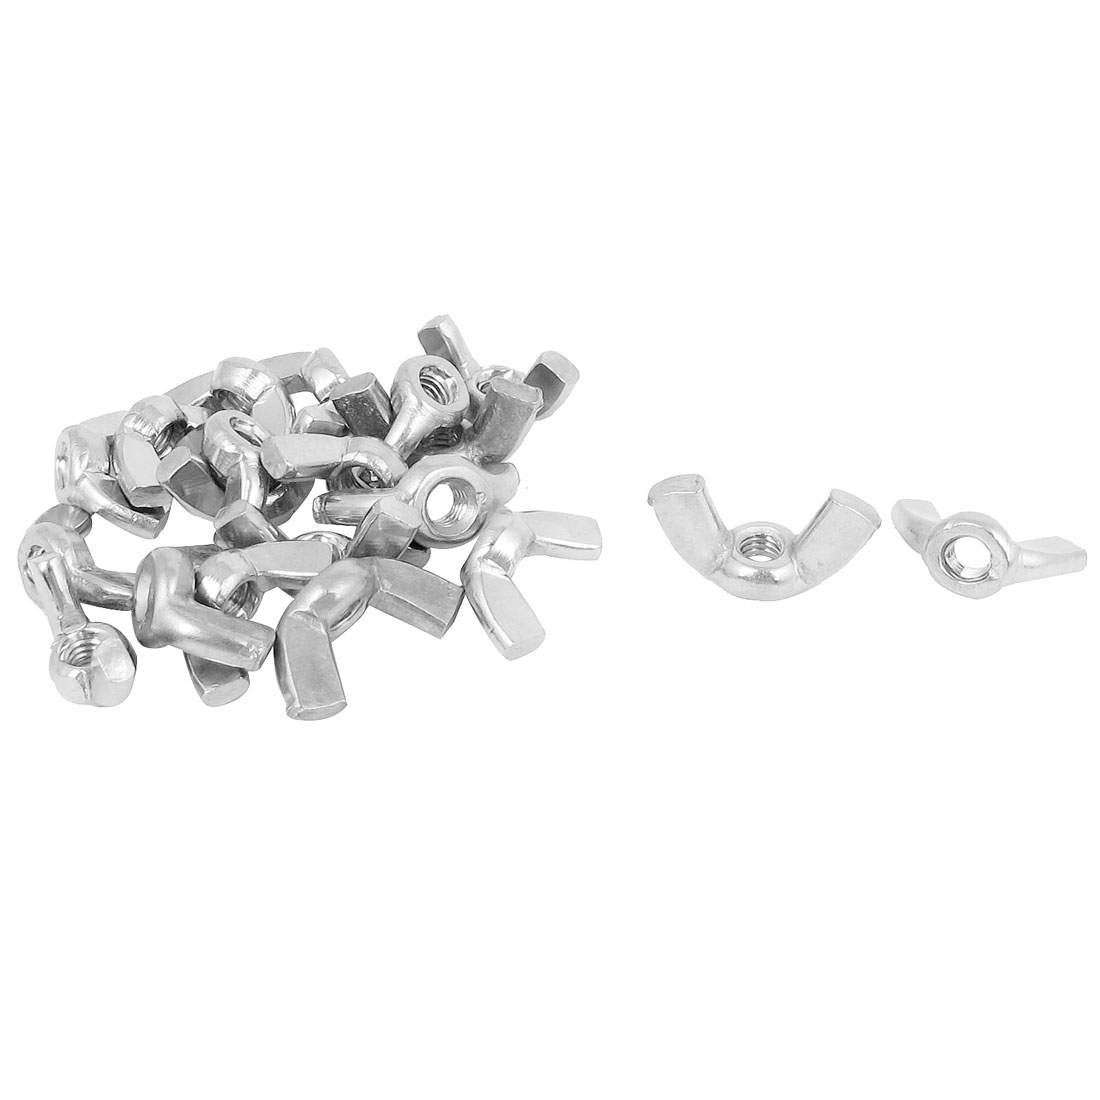 M4 Female Thread Dia 304 Stainless Steel Wingnut Butterfly Wing Nuts 20Pcs